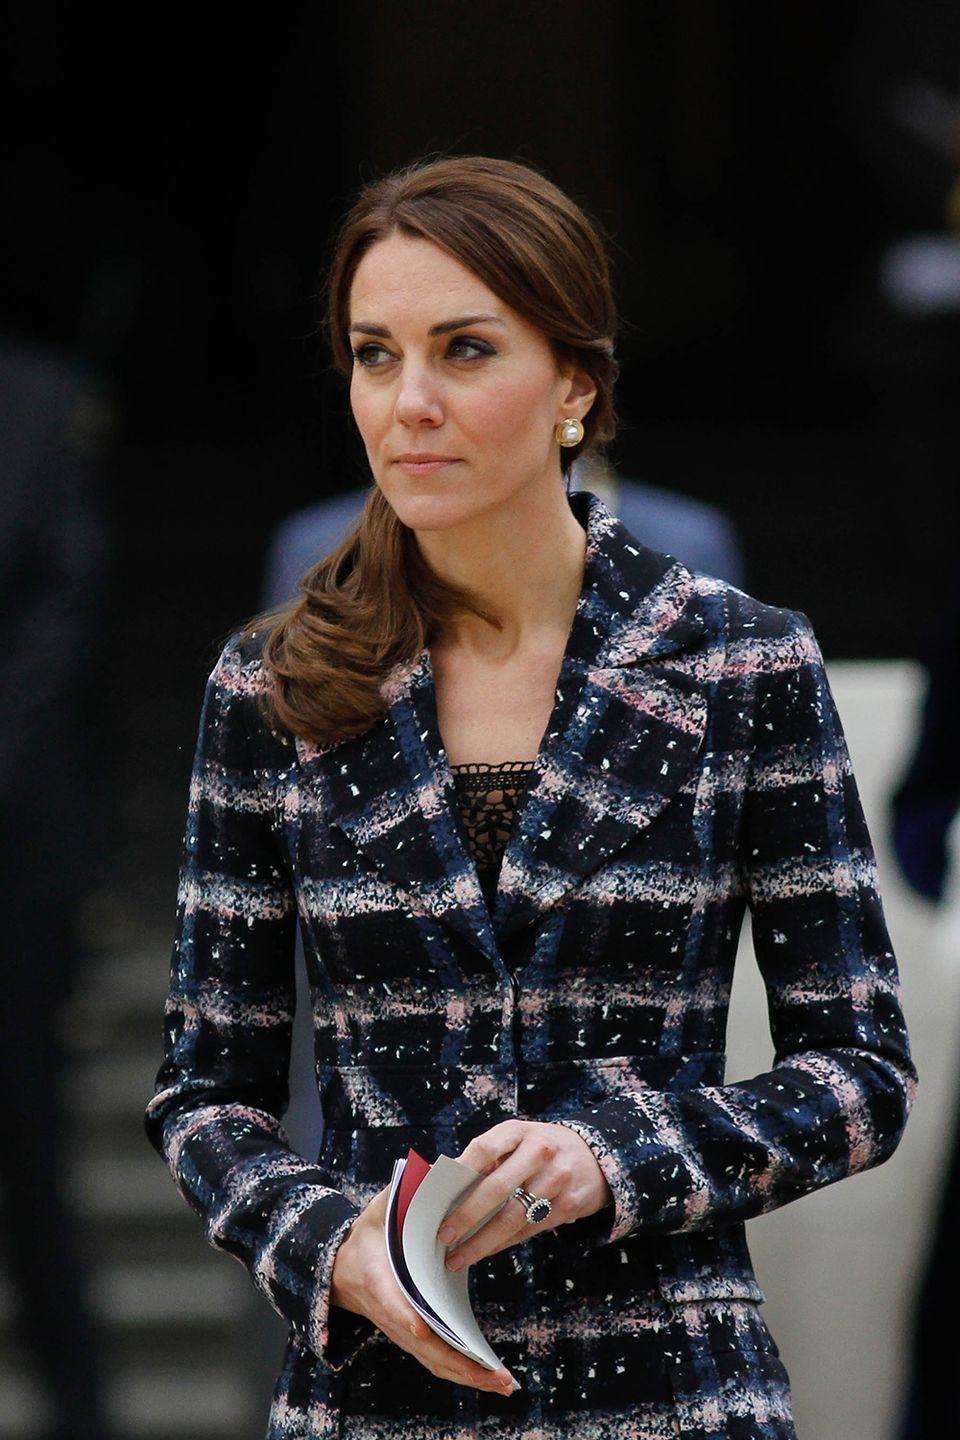 """<p>According to reports, Kate and William's <a href=""""http://www.eonline.com/news/742460/prince-william-and-kate-middleton-s-royal-staff-threatens-to-strike"""" rel=""""nofollow noopener"""" target=""""_blank"""" data-ylk=""""slk:royal staff threatened to go on strike"""" class=""""link rapid-noclick-resp"""">royal staff threatened to go on strike</a> in 2016 after they found out they'd be taking a pay cut. The charity that manages staff salaries proposed a cut that would decrease every worker's salary by $5,000 per year. It was never reported as to whether or not the staff did go on strike. Kate might have dodged a bullet here, but the incident didn't look good in headlines for her or the palace.</p>"""